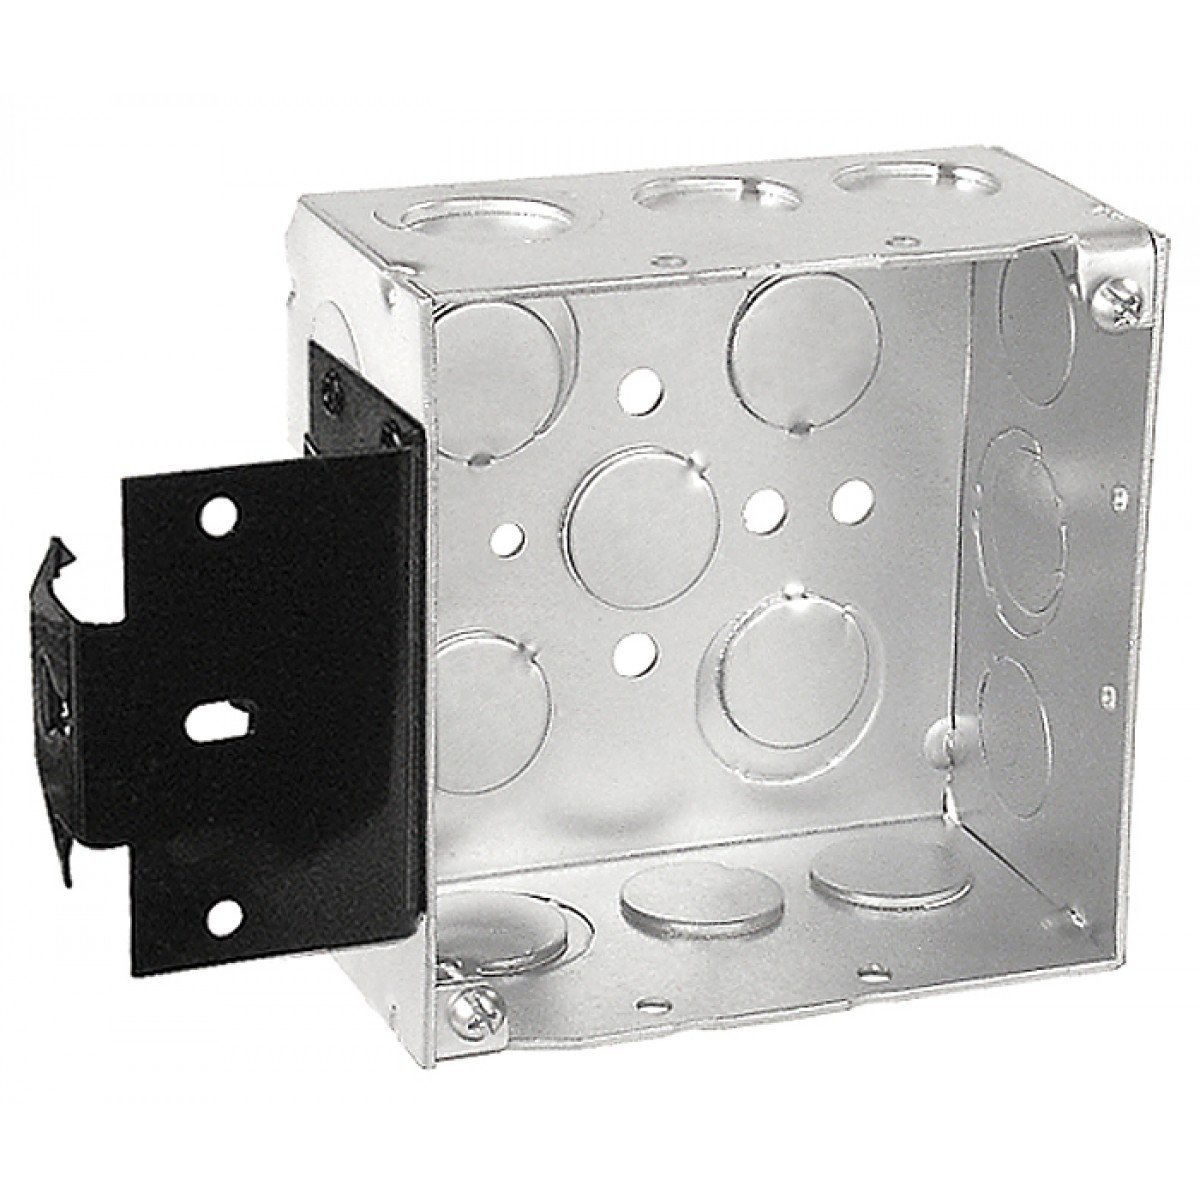 "2 Pcs, 4"" Square Junction Box, 2-1/8 In. Deep, w/Metal Stud Bracket, Zinc Plated Steel. Knockouts: Side: (4) 1/2 In & (5) 1/2-3/4 In; Bottom (3) 1/2 In & (2) 3/4 In"